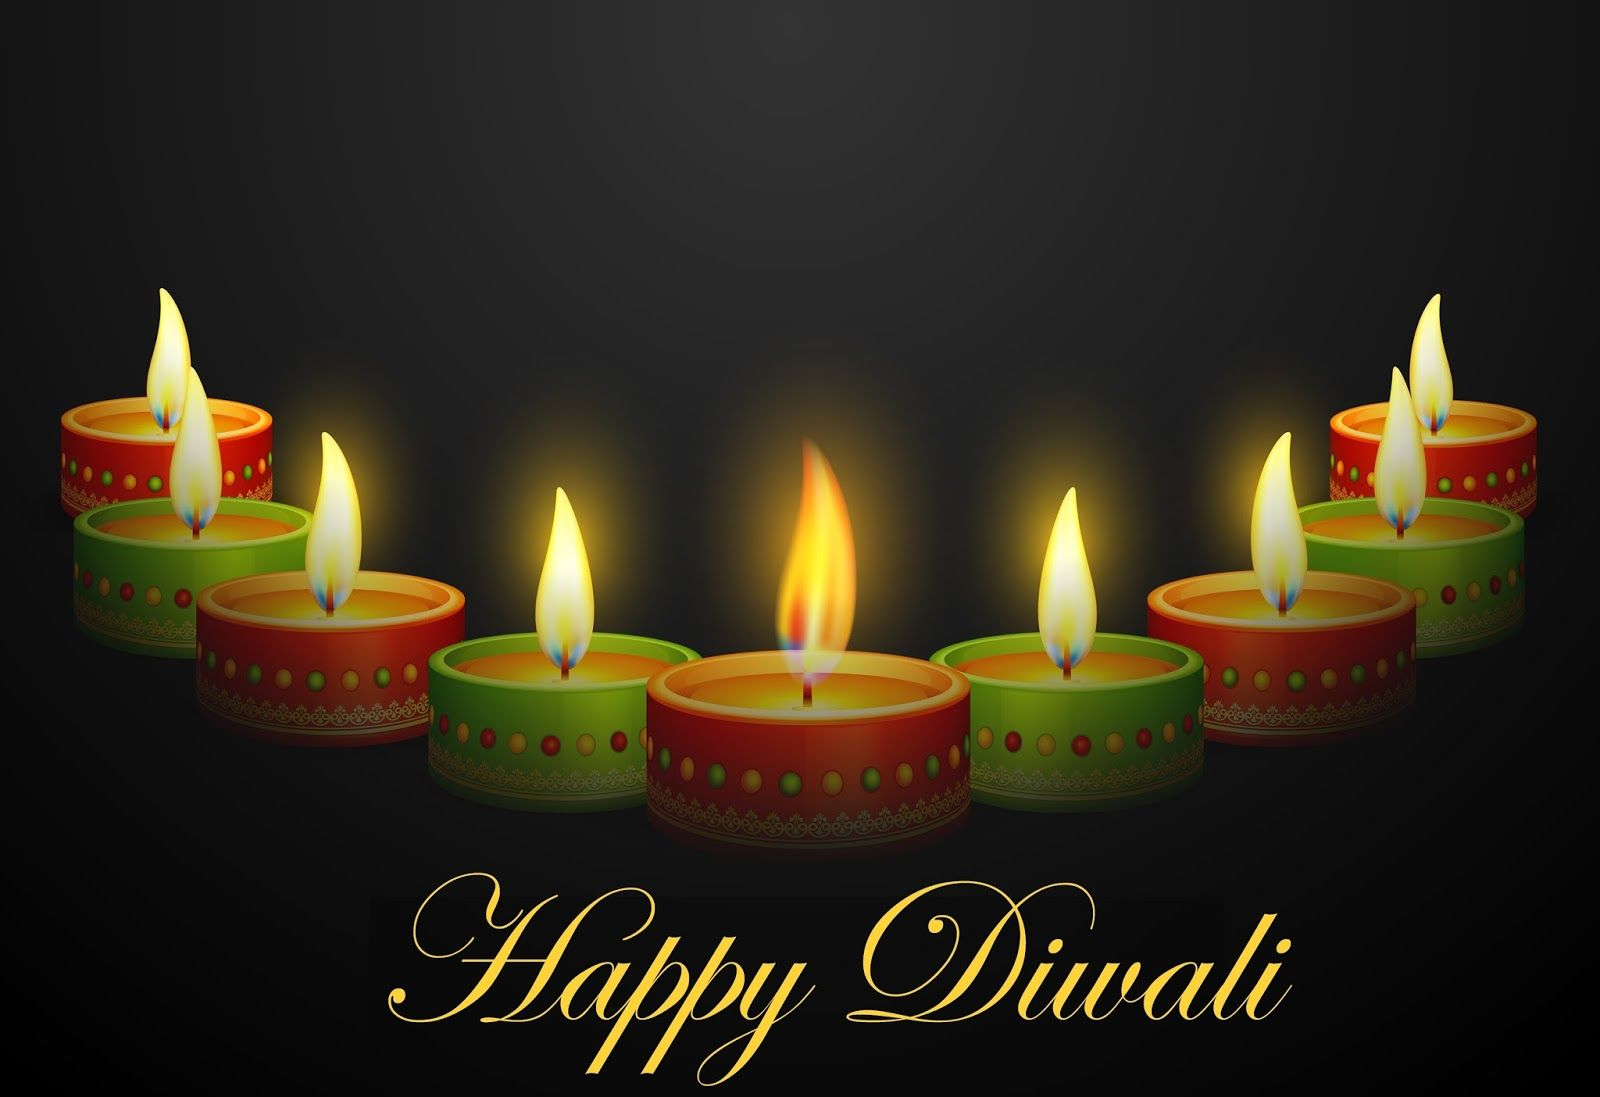 Happy Diwali Images 2018 Free Download For Whatsapp Facebook In